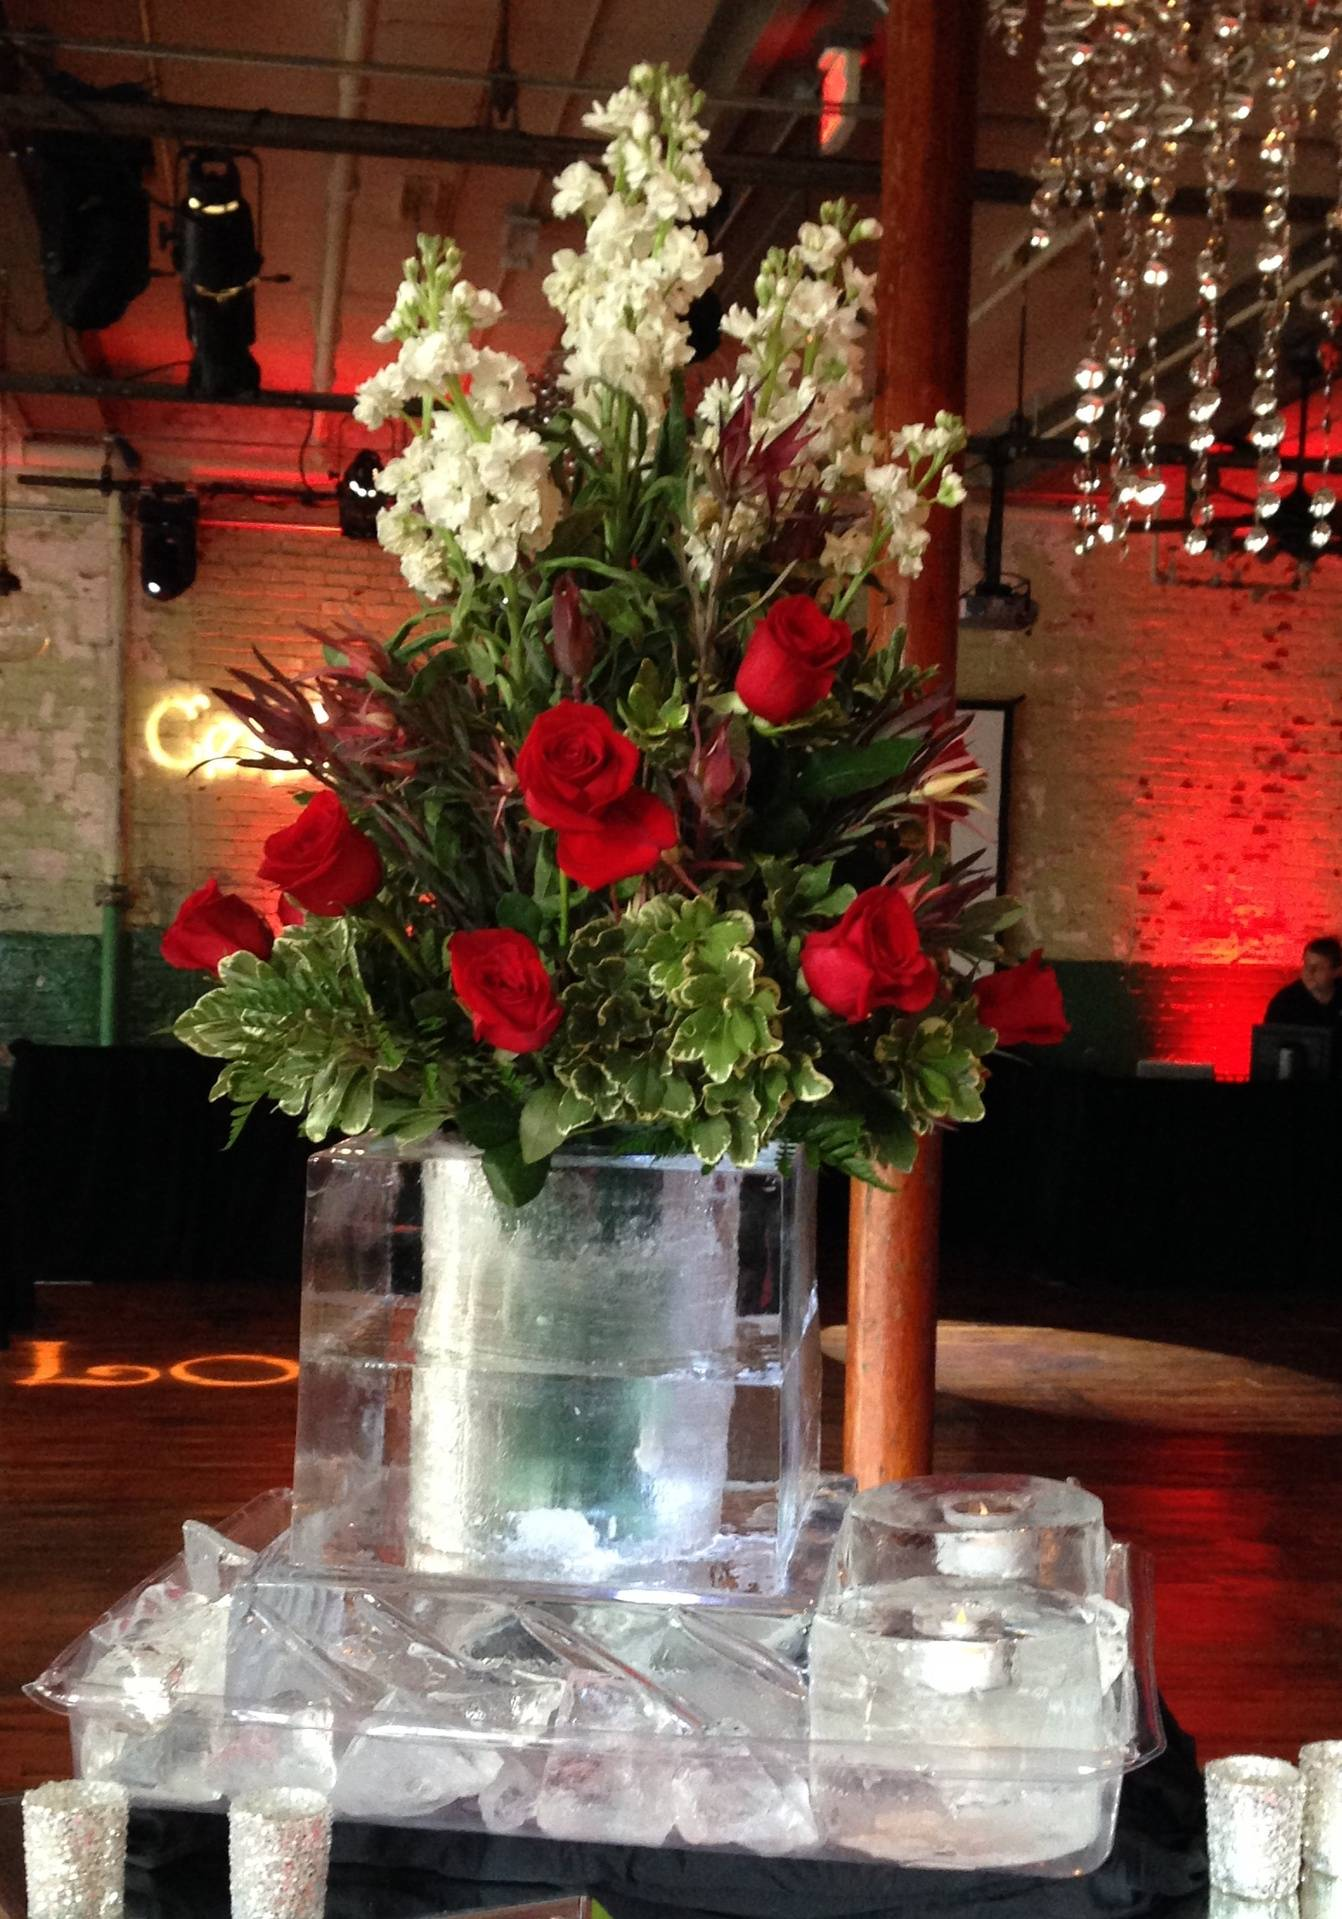 Flower display with real candle holder made of ice